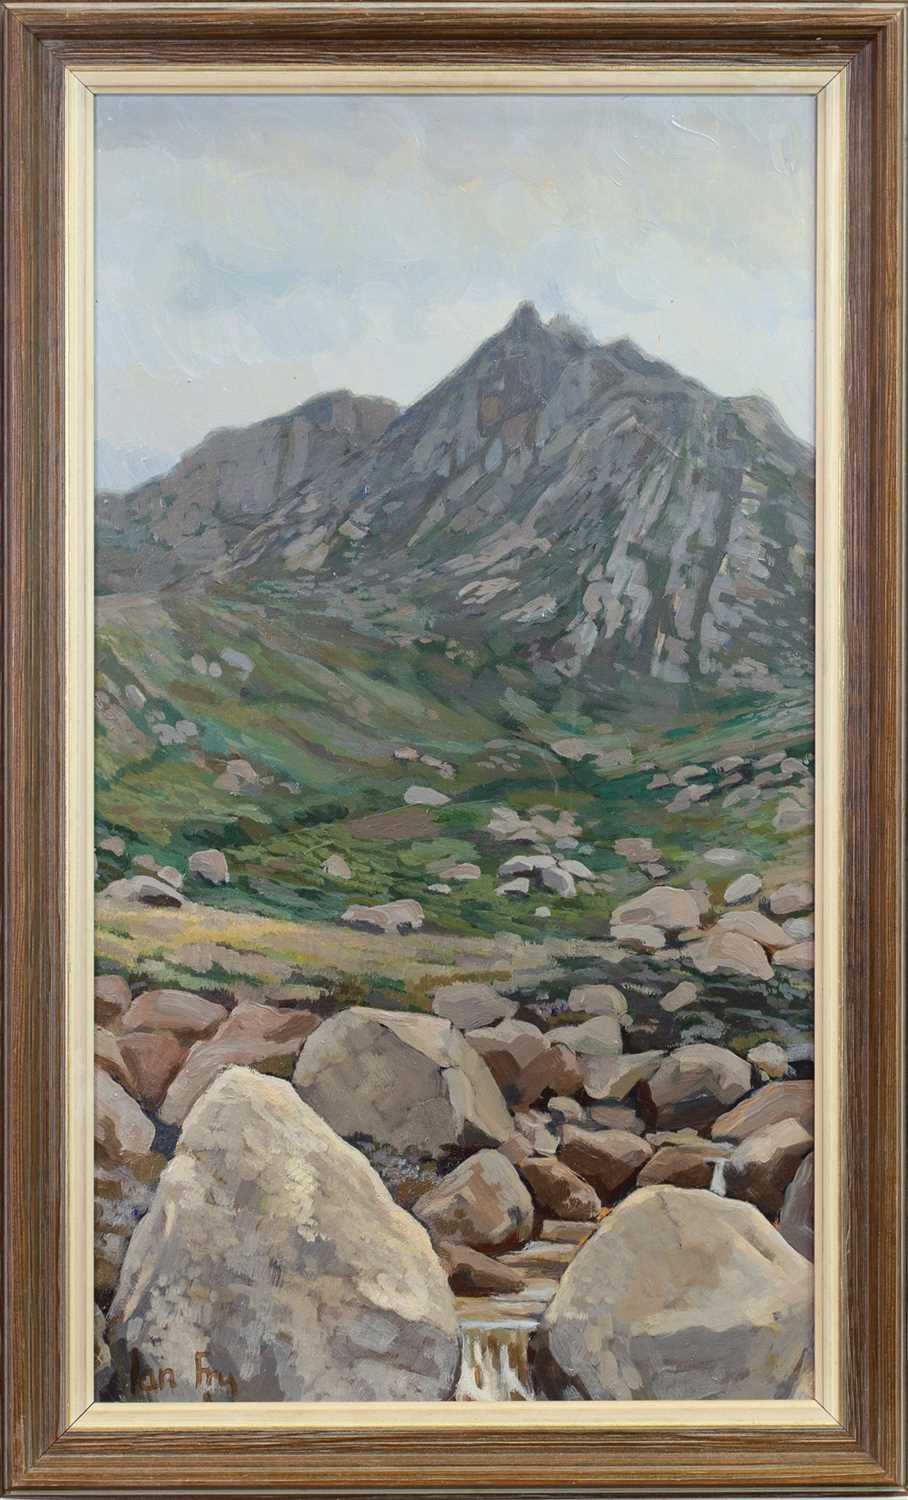 Lot 428-ROCKY LANDSCAPE, AN OIL BY IAN FRY